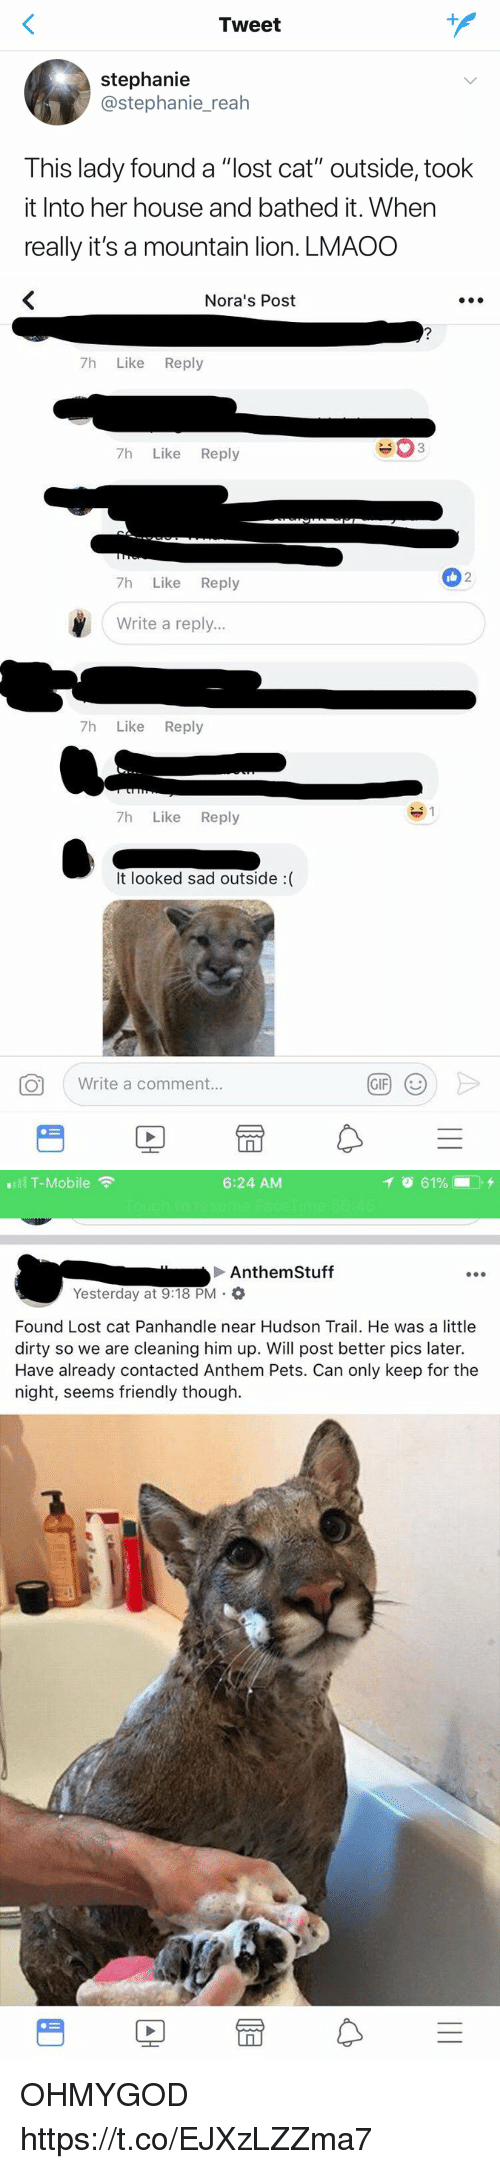 """Gif, T-Mobile, and Lost: Tweet  stephanie  @stephanie_reah  This lady found a """"lost cat"""" outside, took  it Into her house and bathed it. When  really it's a mountain lion. LMAOO   Nora's Post  7h Like Reply  7h Like Reply  2  7h Like Reply  Write a reply...  7h Like Reply  7h Like Reply  It looked sad outside :(  Write a comment.  GIF   .111 T-Mobile令  6:24 AM  イ  61%- . +  Anthem Stuff  Yesterday at 9:18 PM .  Found Lost cat Panhandle near Hudson Trail. He was a little  dirty so we are cleaning him up. Will post better pics later.  Have already contacted Anthem Pets. Can only keep for the  night, seems friendly though.  PE OHMYGOD https://t.co/EJXzLZZma7"""